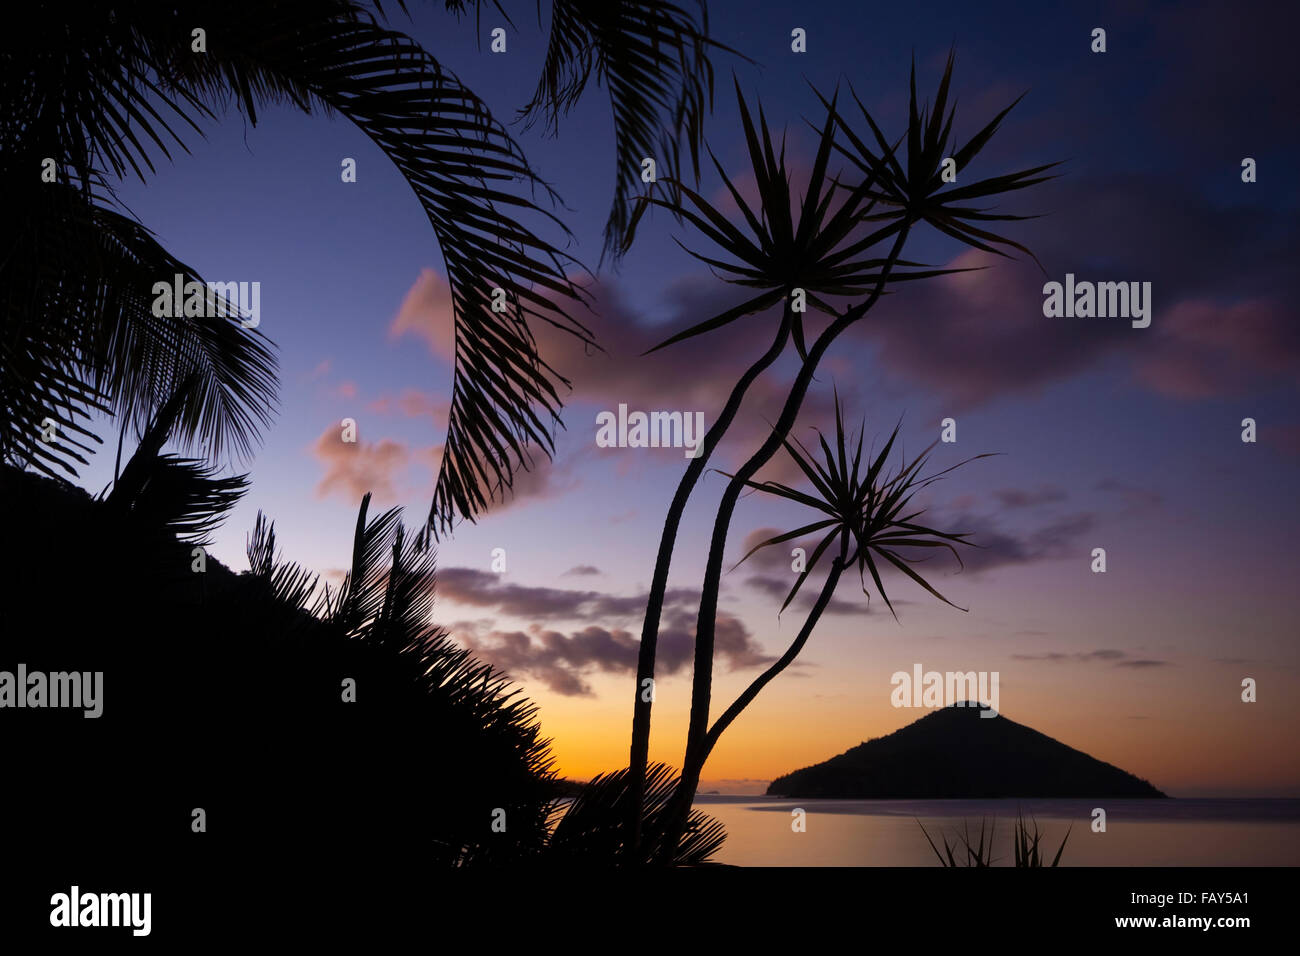 Sunset at South Molle Island, Whitsunday Islands, Queensland, Australia. - Stock Image